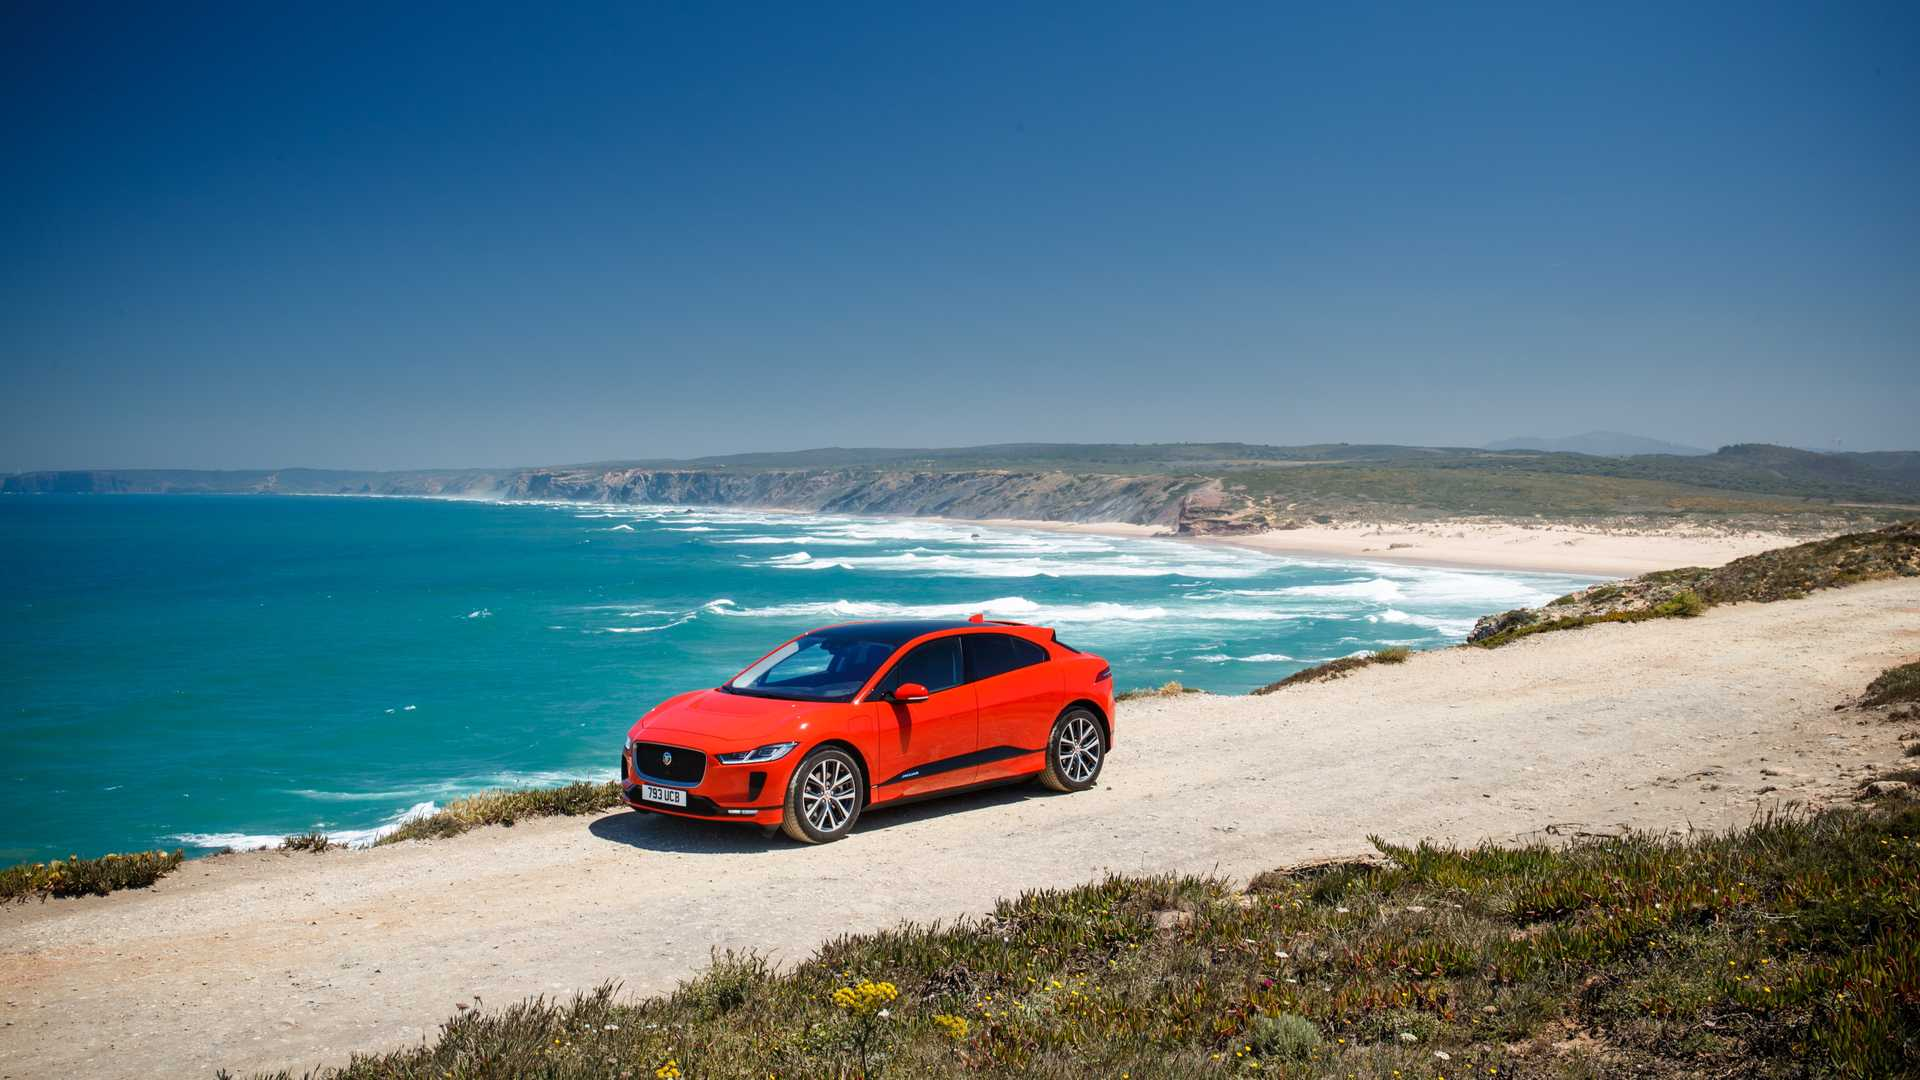 I-PACE Sales In U.S. Remain Stable At 11% Of Jaguar's Volume